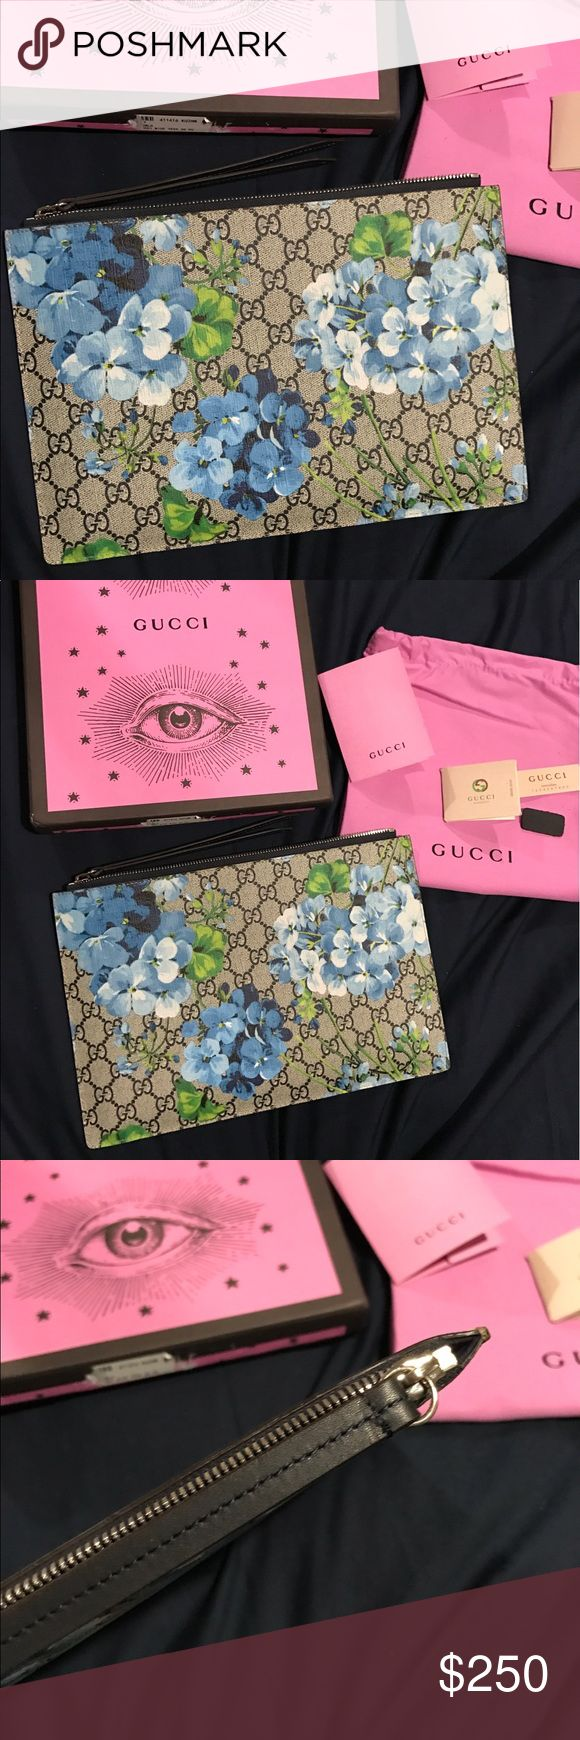 GUCCI BLOOMS FLORAL CLUTCH BAG  Brand new! Amazing quality. Real leather. Large size clutch bag. Comes with box and dustbag. PRICE R E F L E C T S !!! No trades! No low balling Gucci Bags Clutches & Wristlets